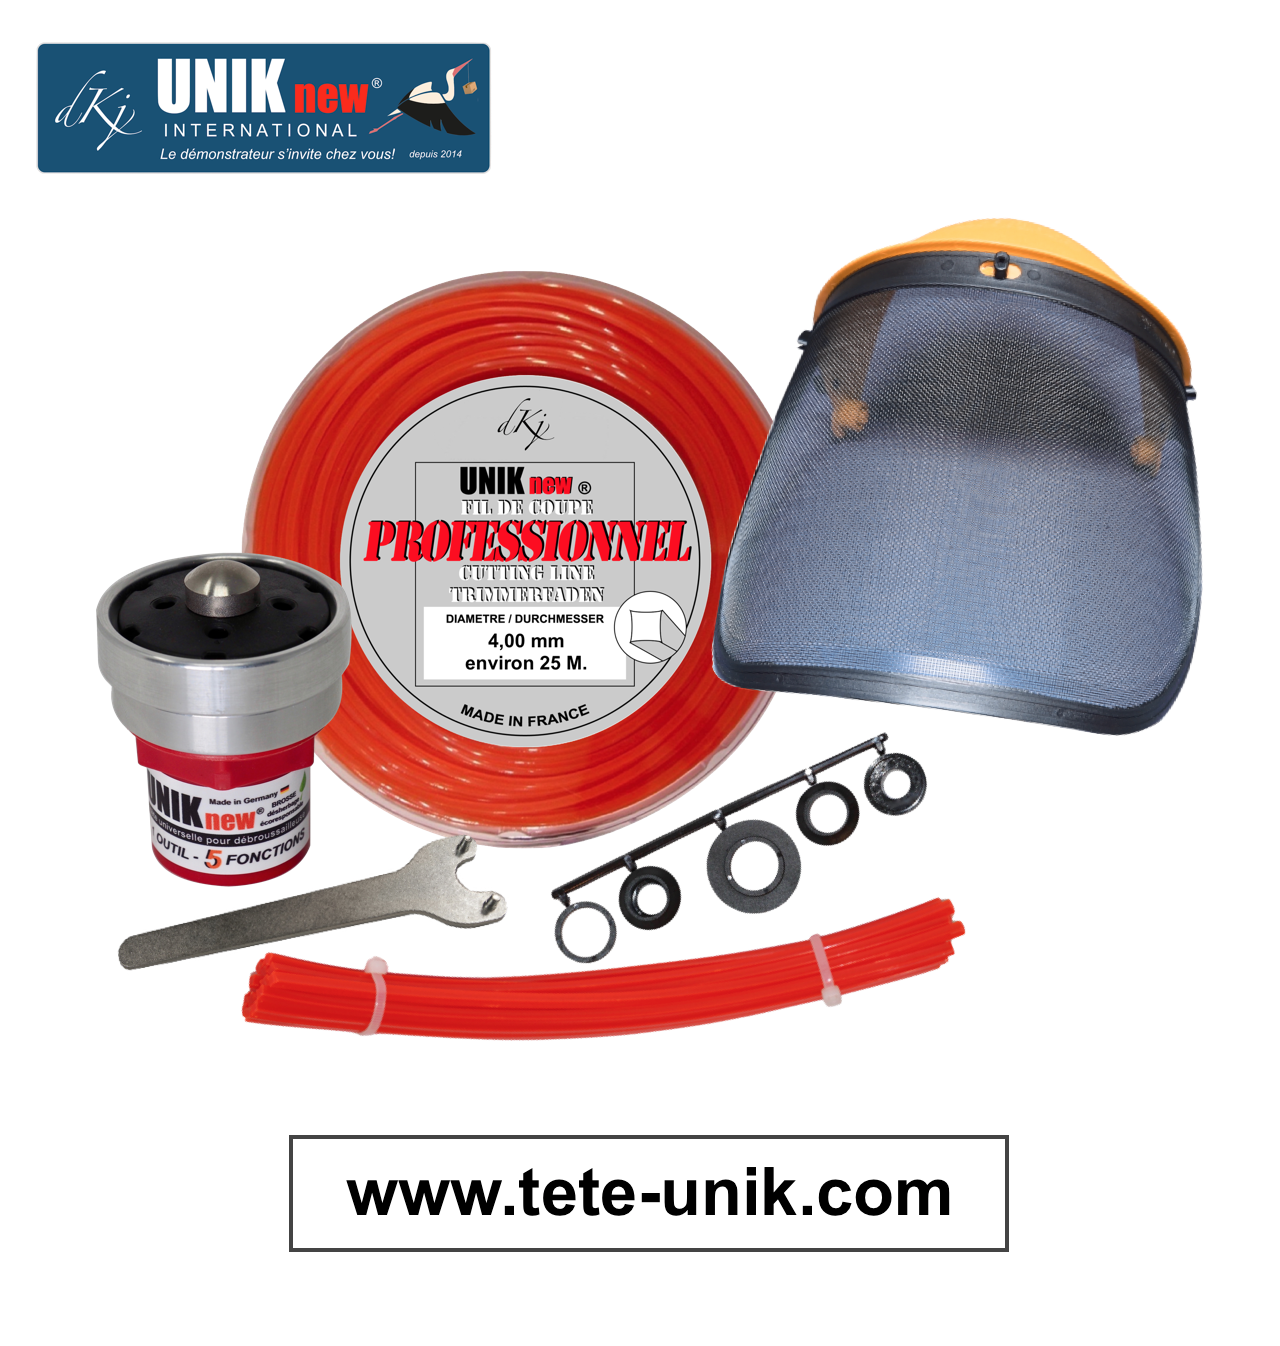 Kit UNIK technik Pro 2020 site